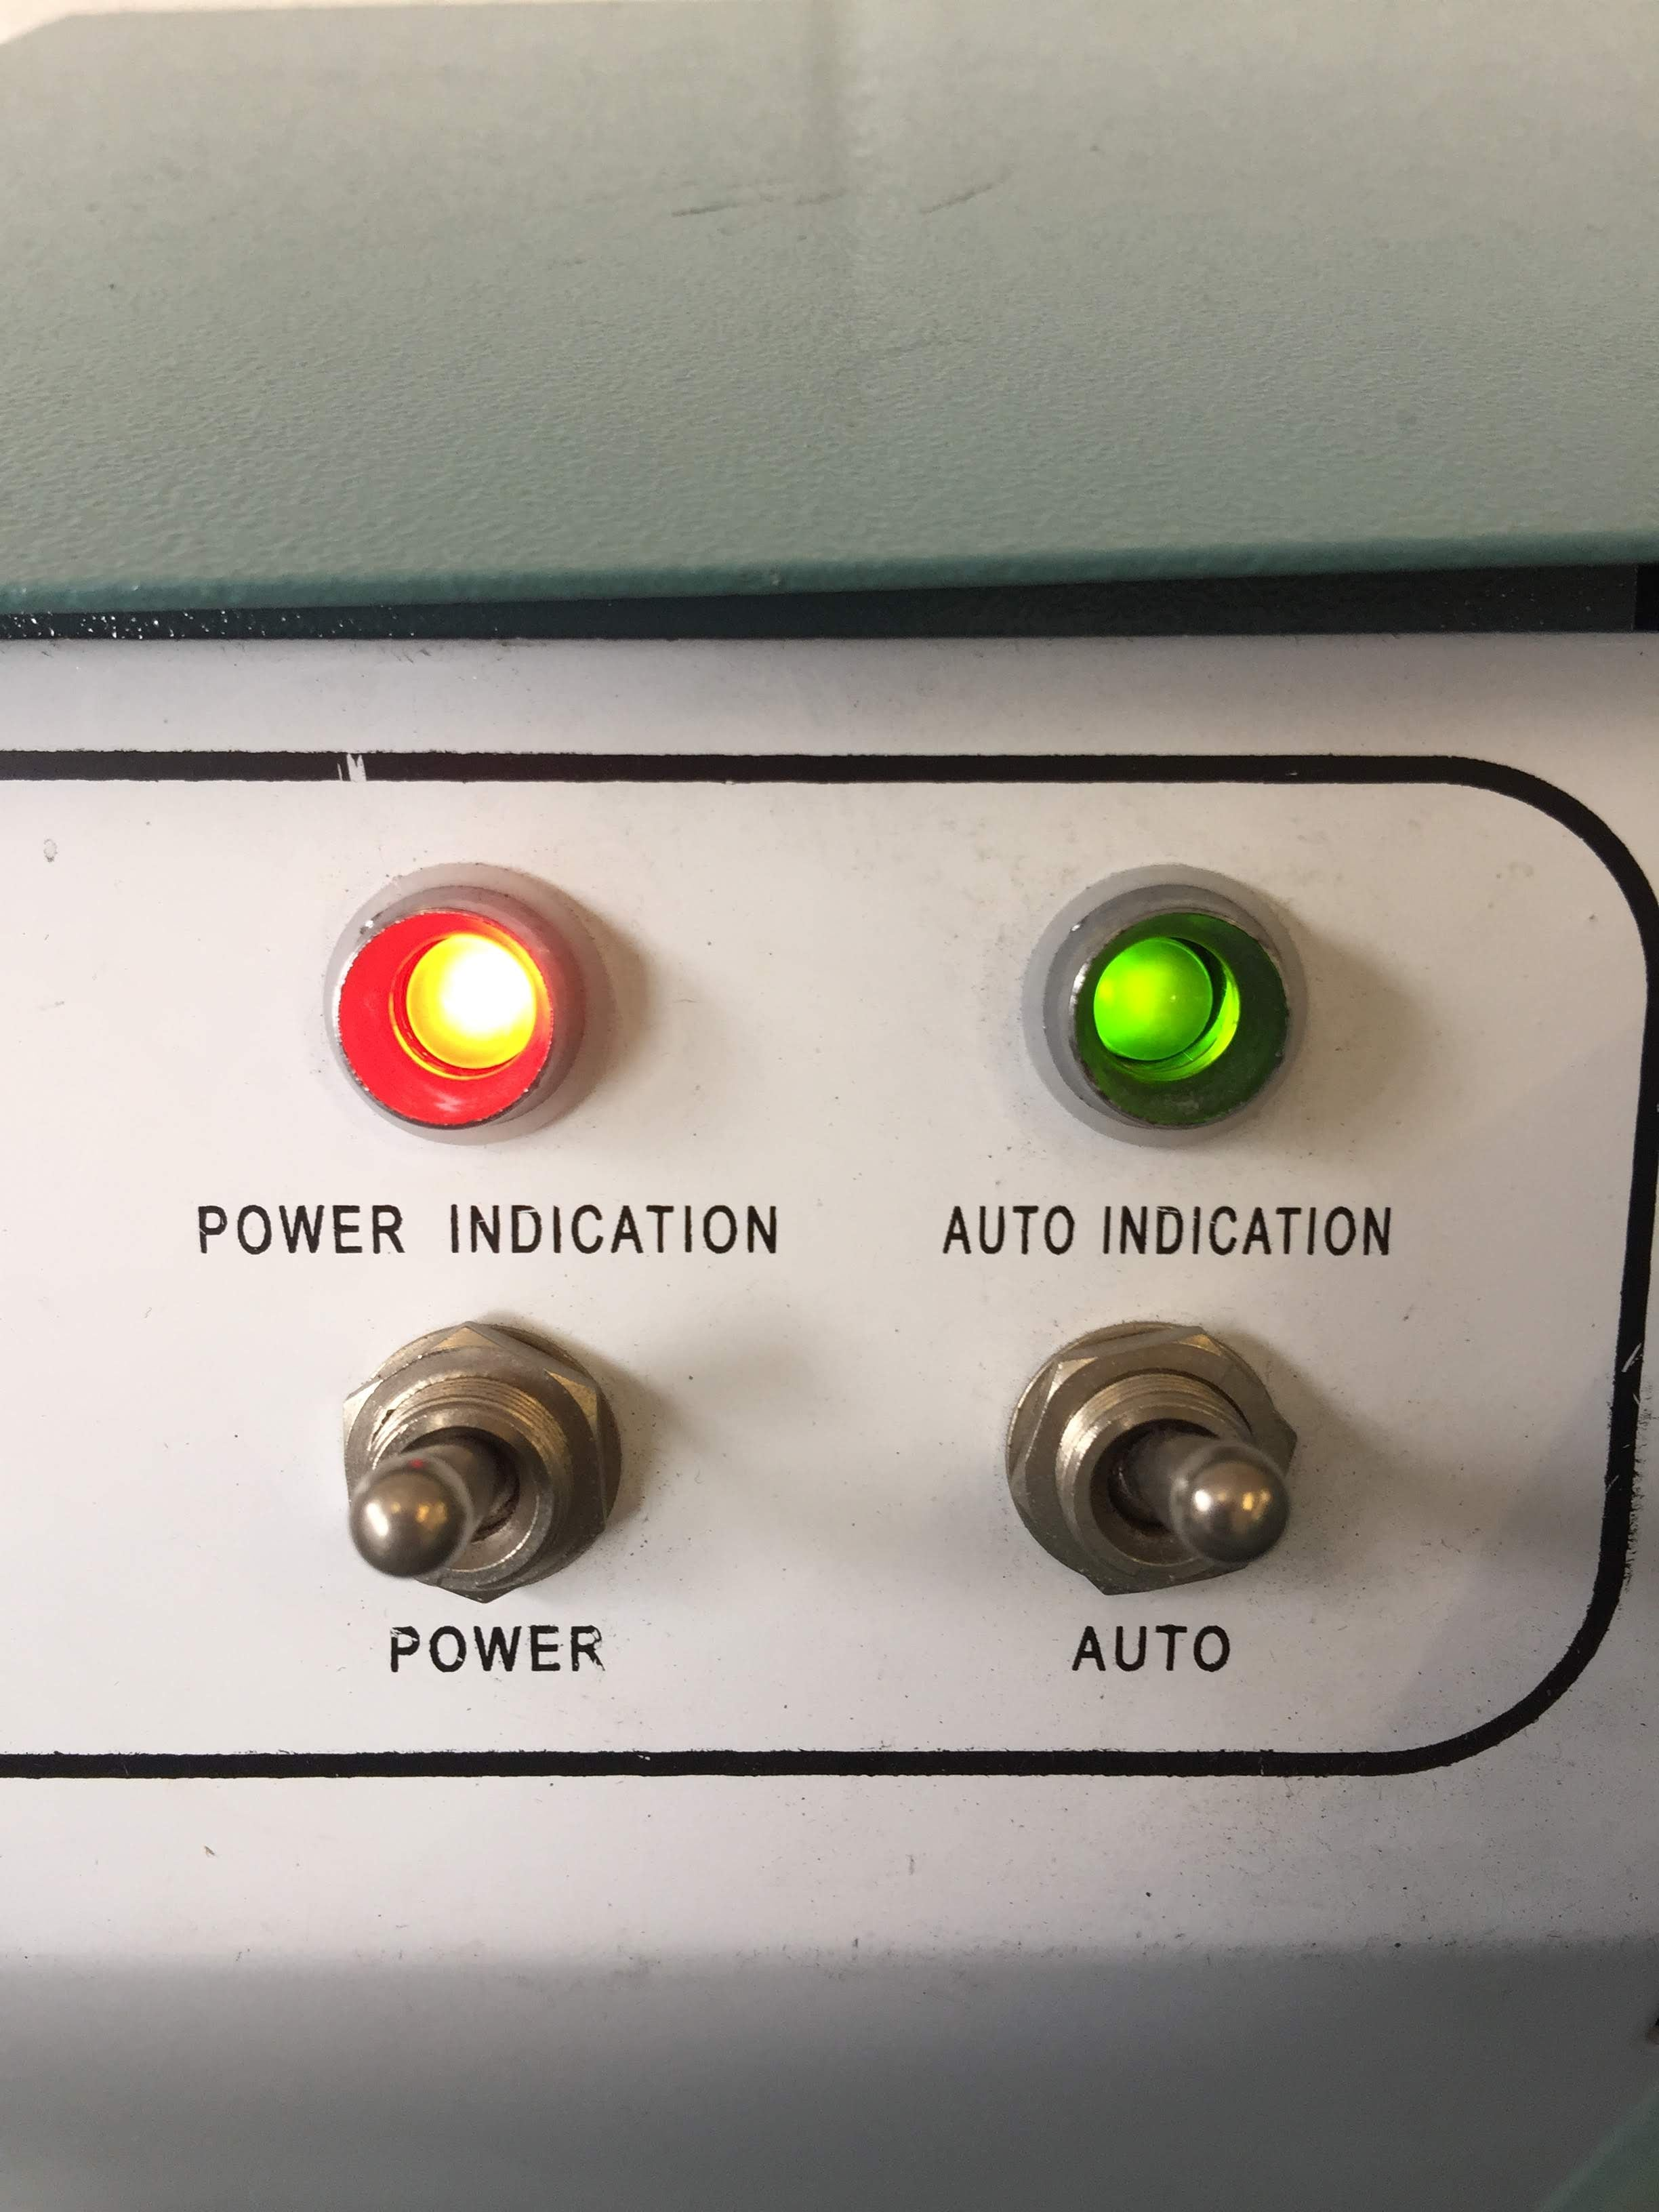 Power & Auto Switches and Indication Lights